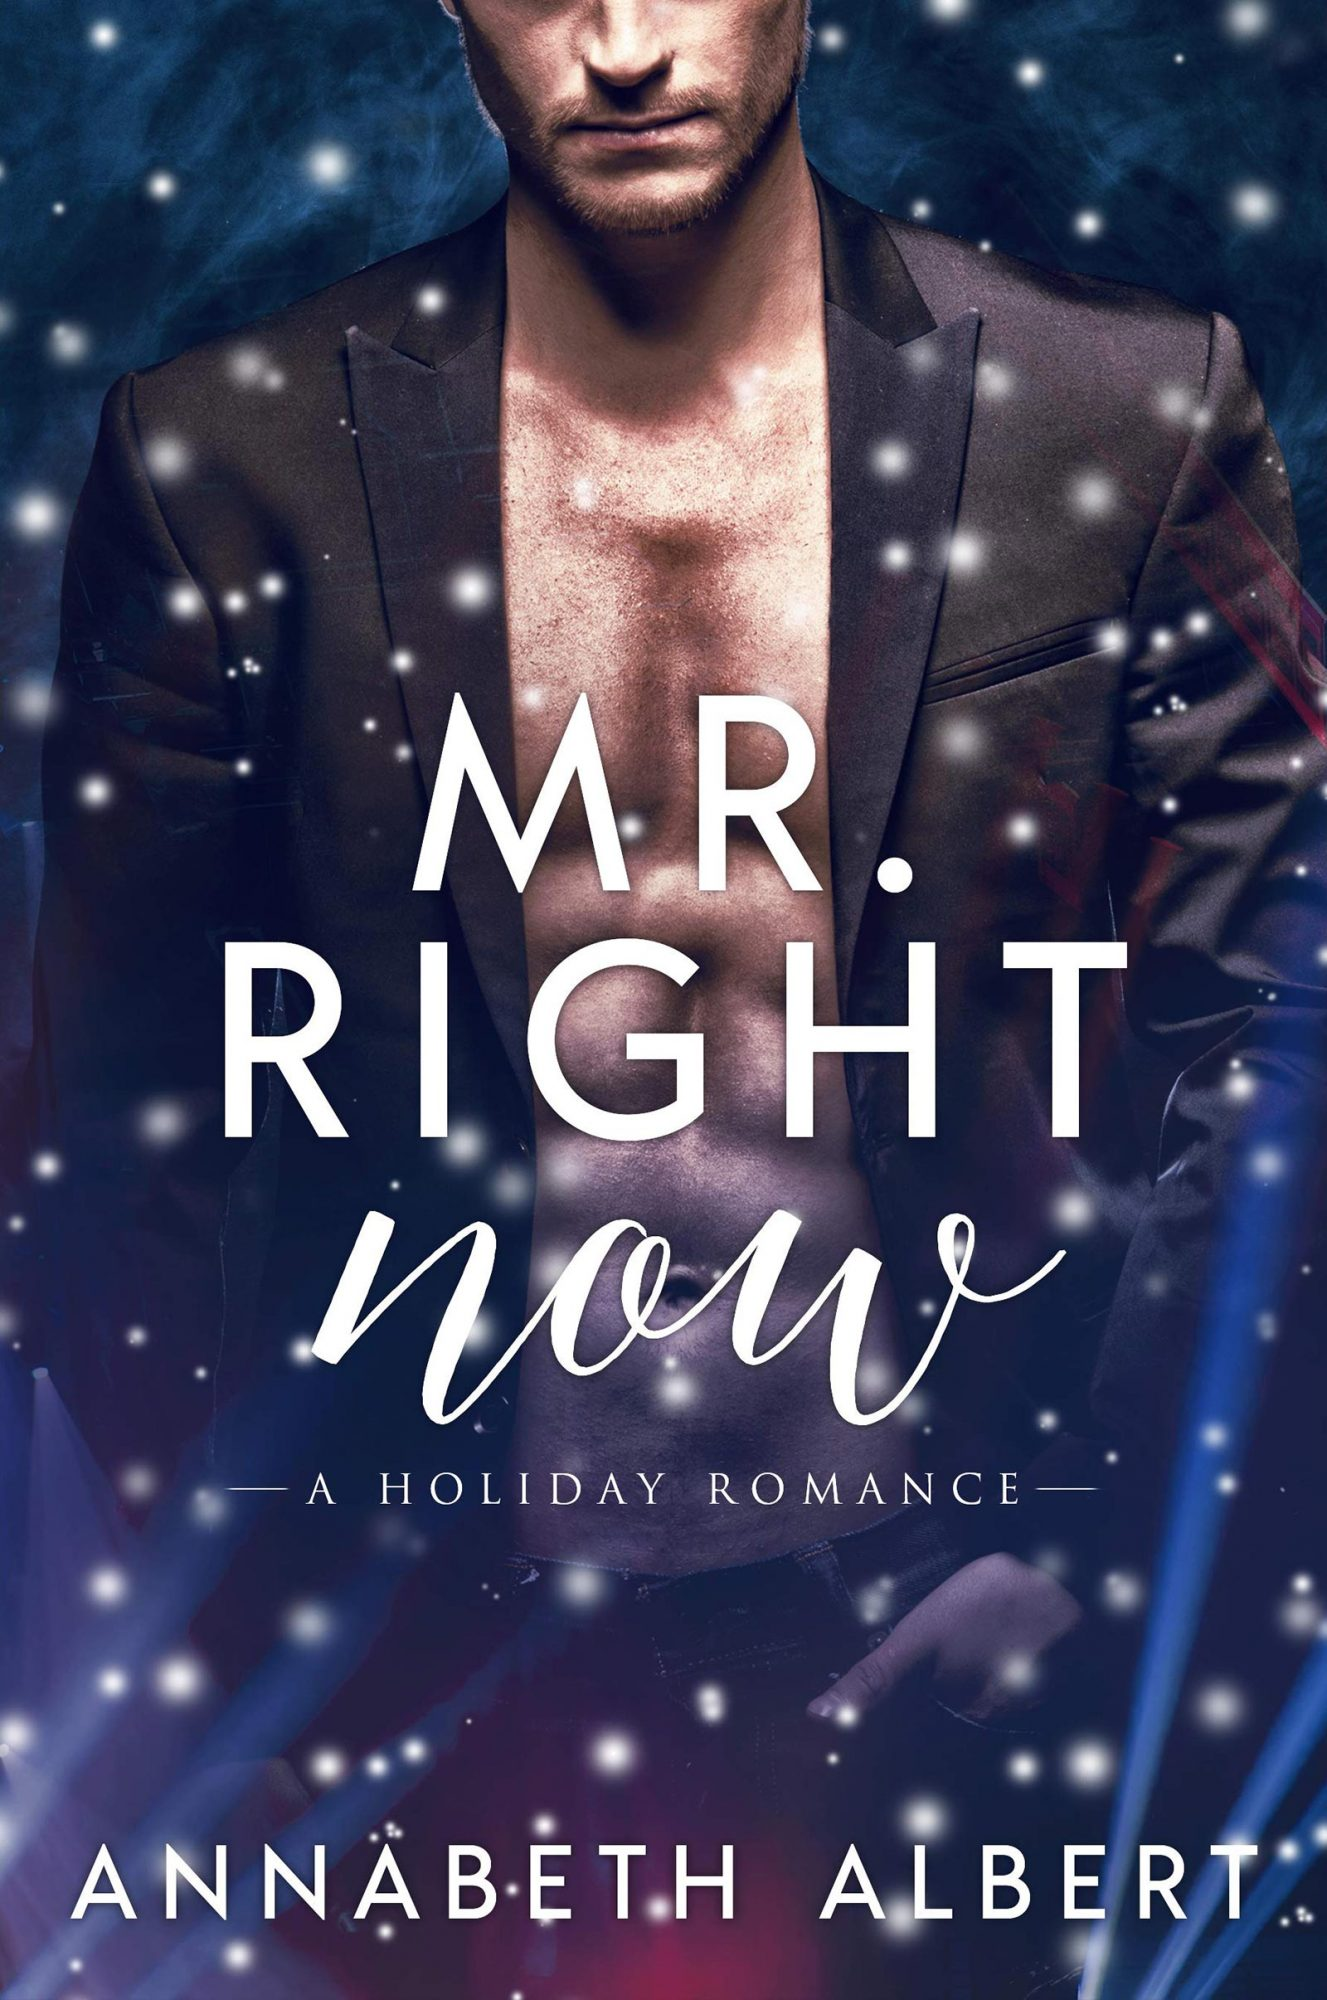 Mr. Right Now by Annabeth AlbertSold by: Amazon Digital Services LLC